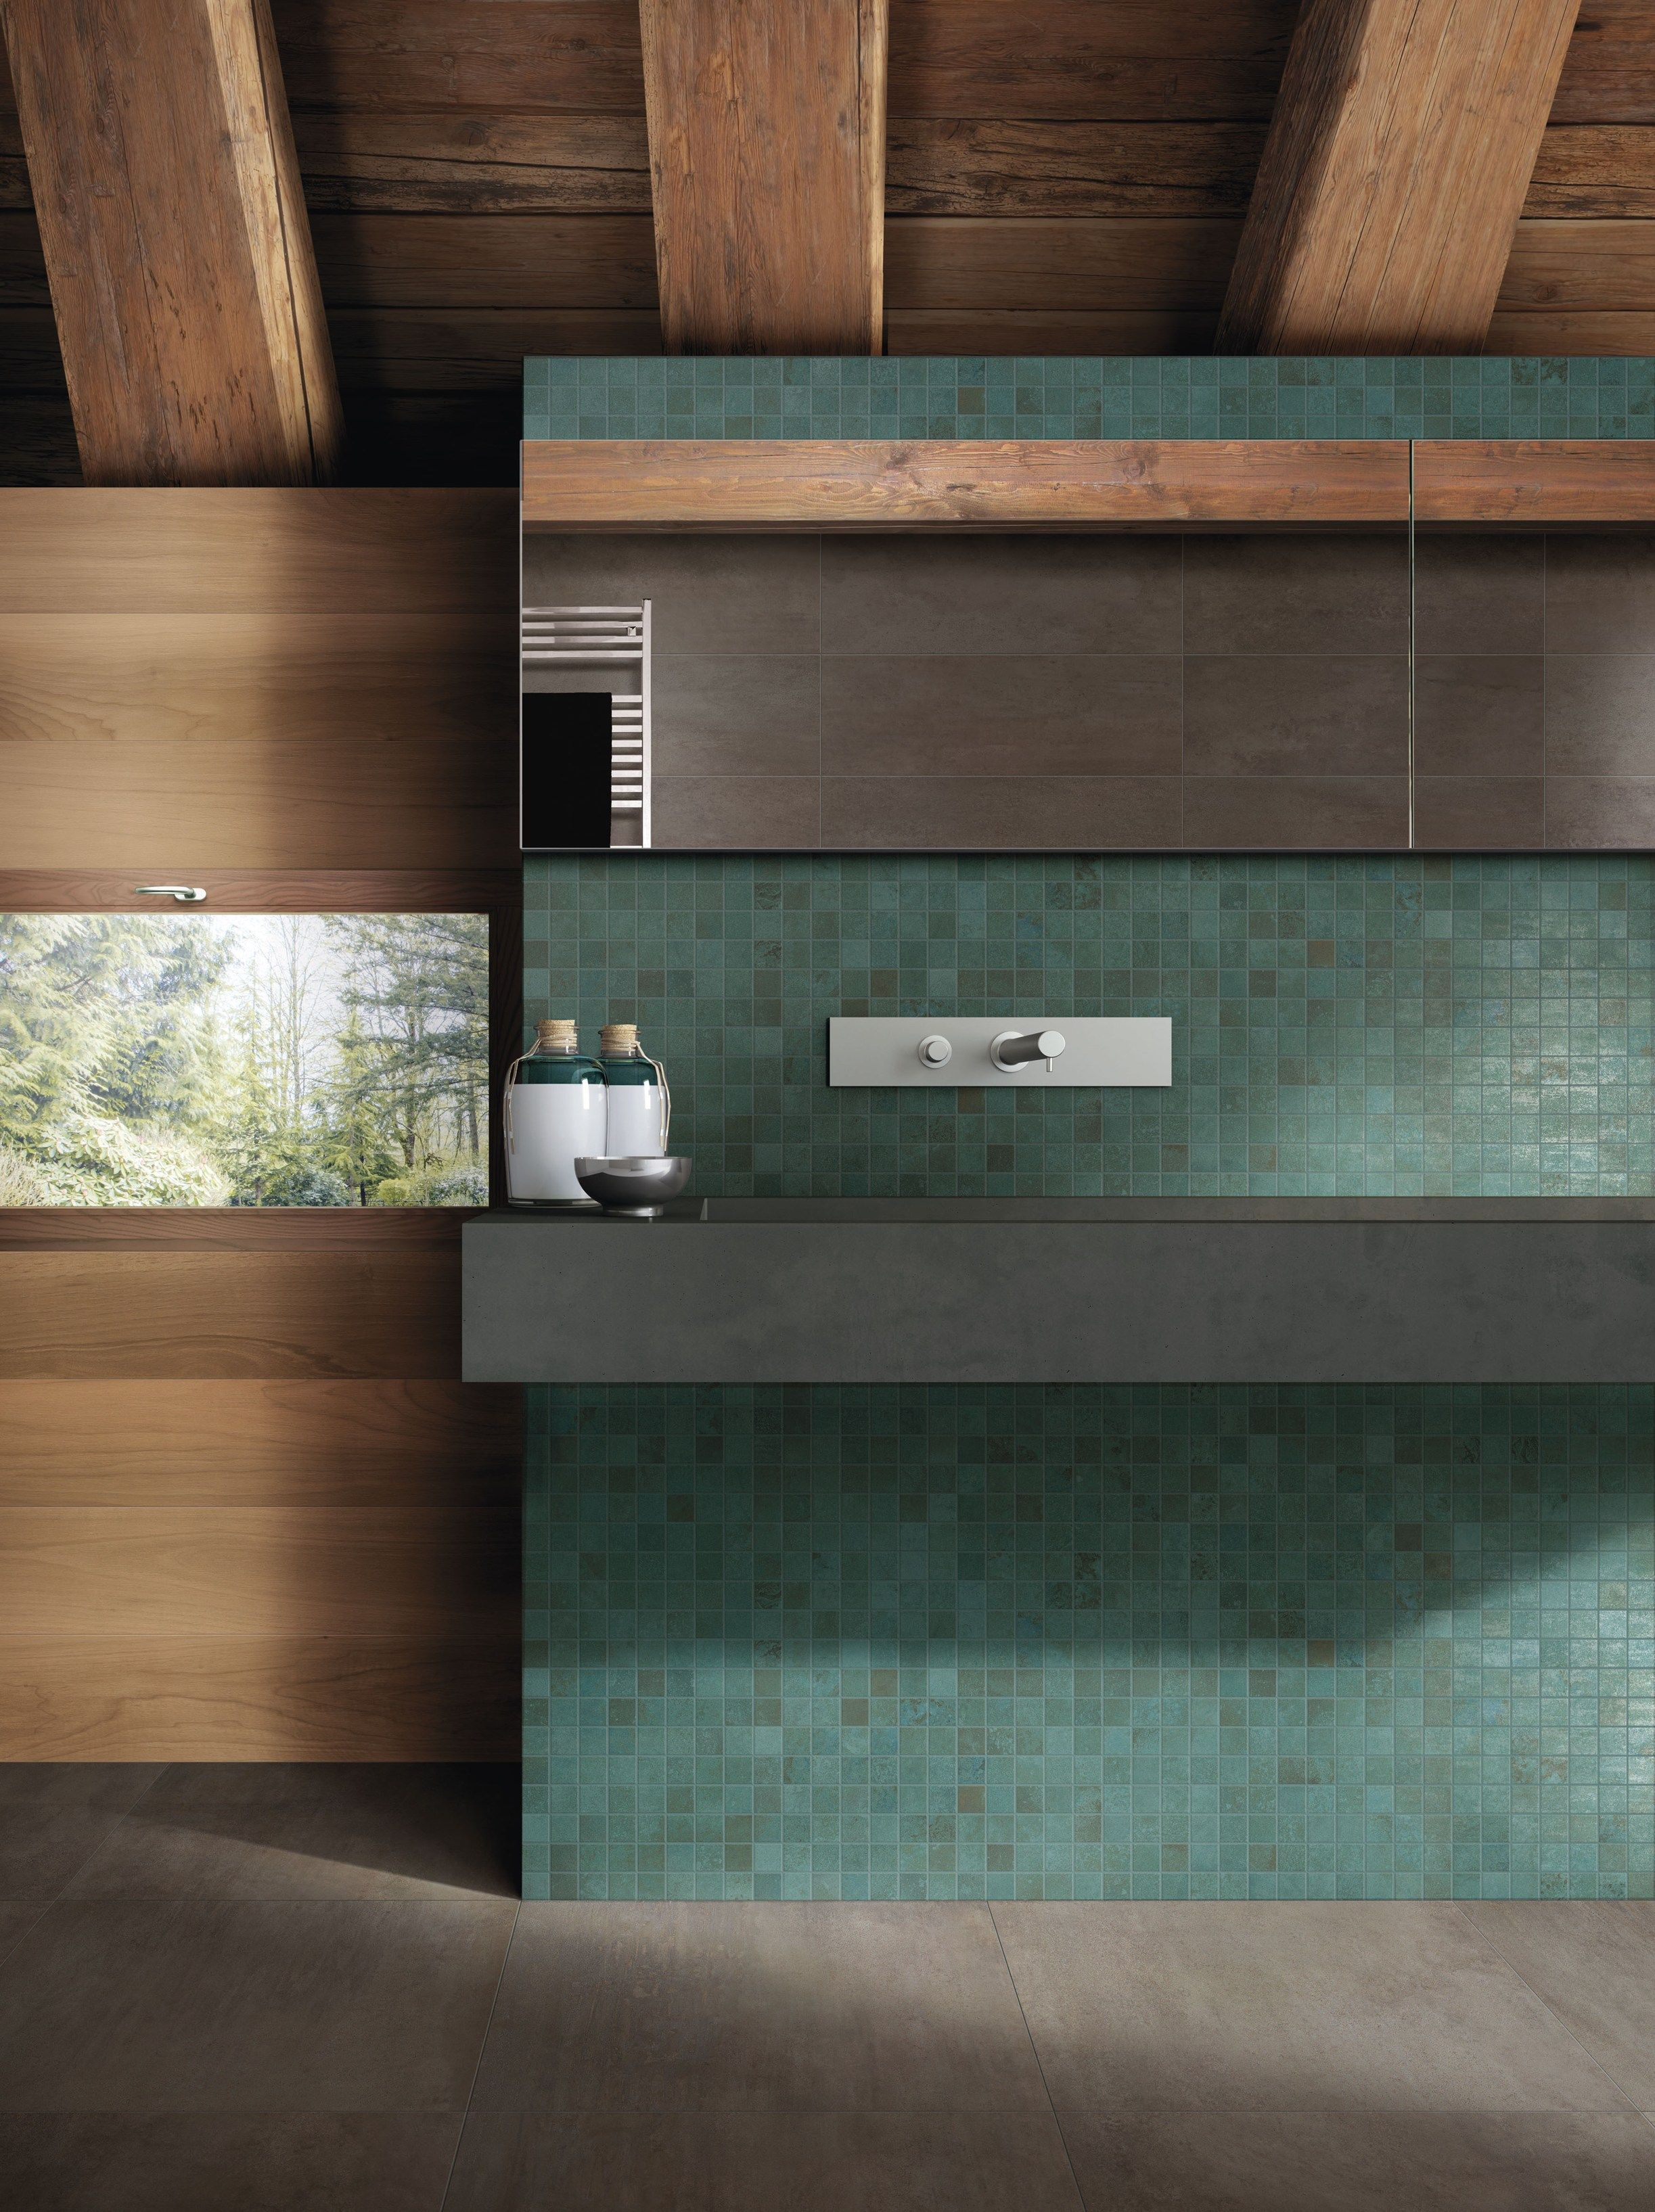 Awesome 16 Ceramic Tile Big 24 Ceramic Tile Clean 3D Ceramic Wall Tiles 3X6 Glass Subway Tile Backsplash Old 6 X 12 Glass Subway Tile YellowAcoustical Ceiling Tiles Prices Floor Tiles With Metal Effect TRACE MINT ..